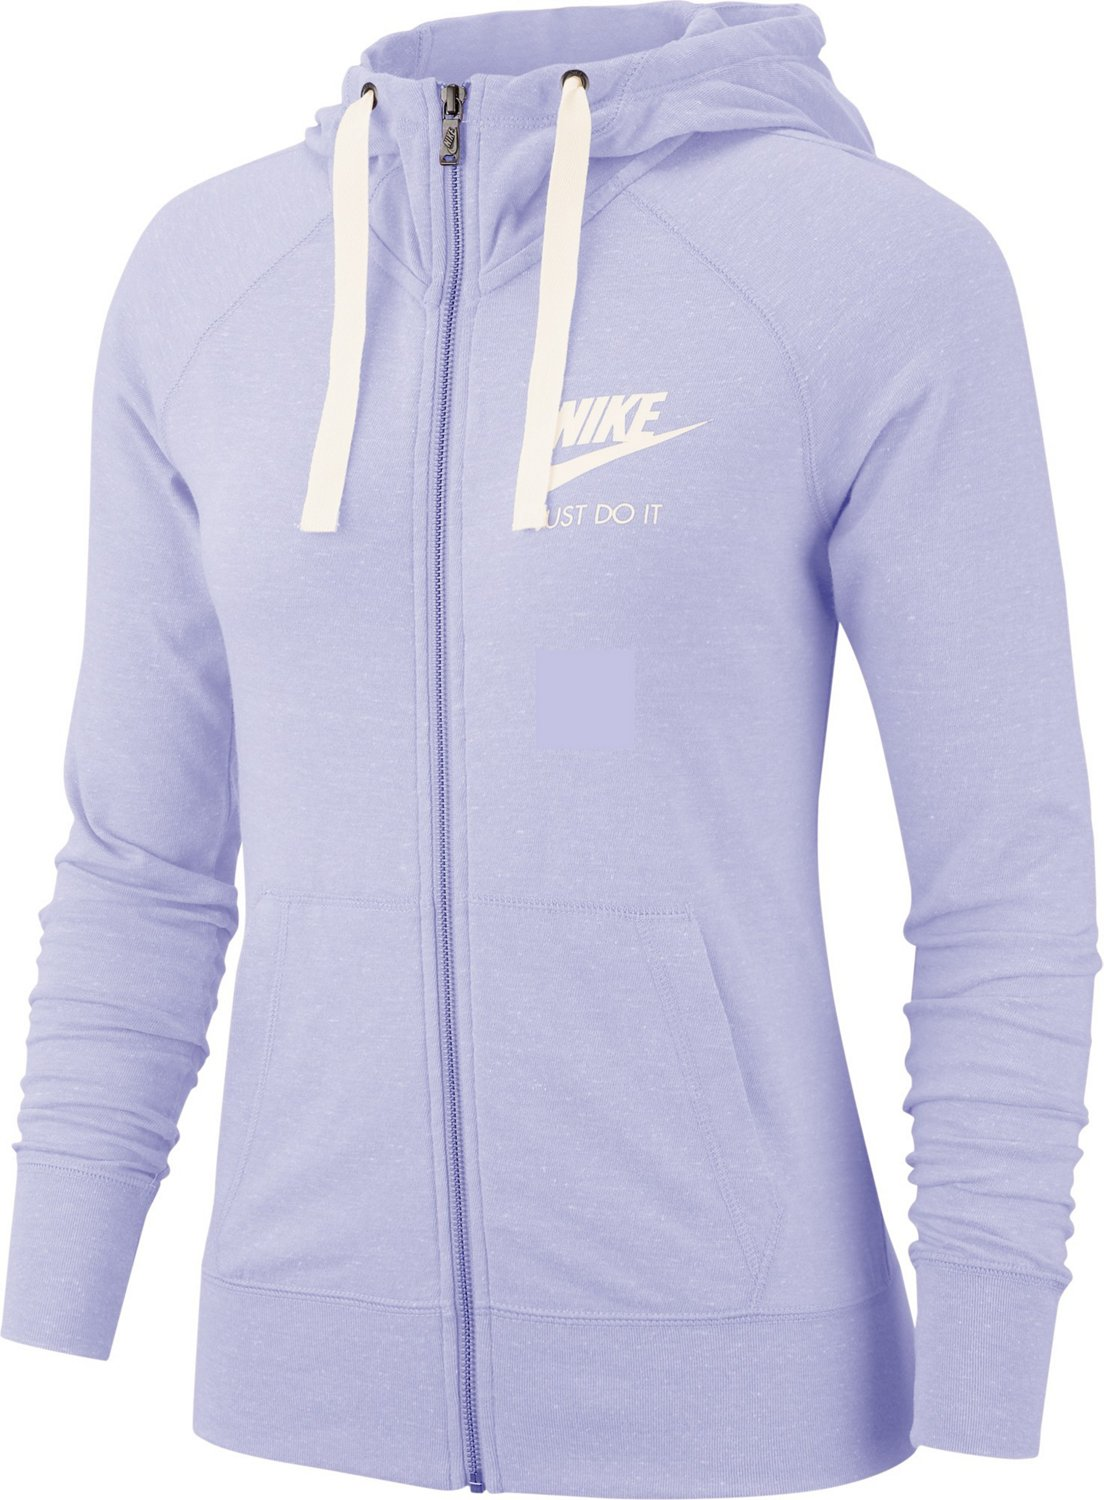 84affa70c Display product reviews for Nike Women's Gym Vintage Full Zip Hoodie